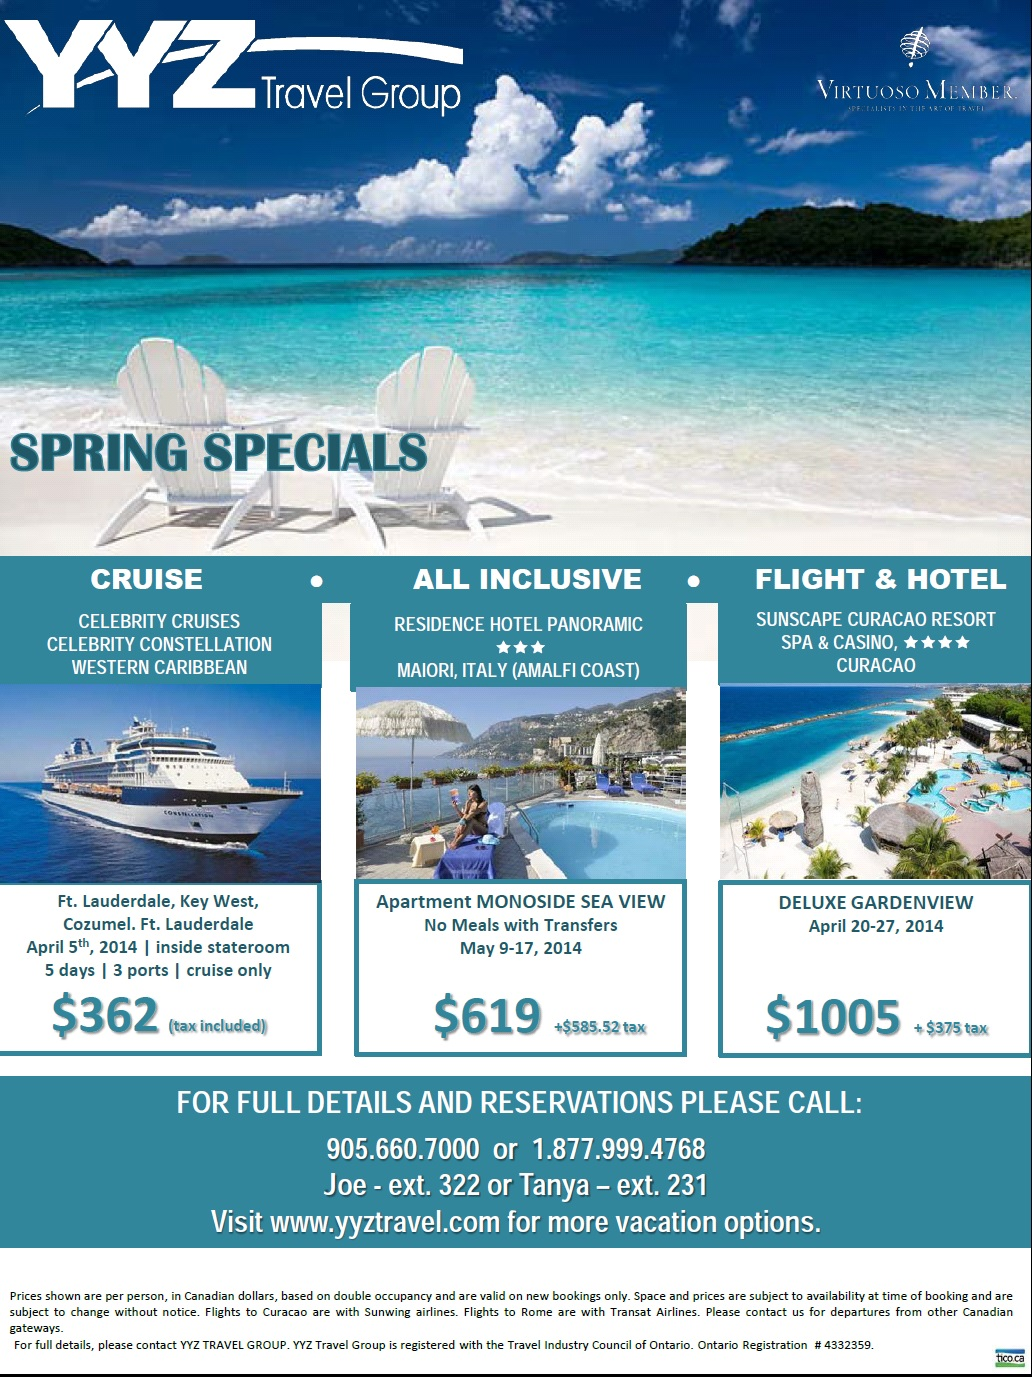 corporate Spring Specials travel deals